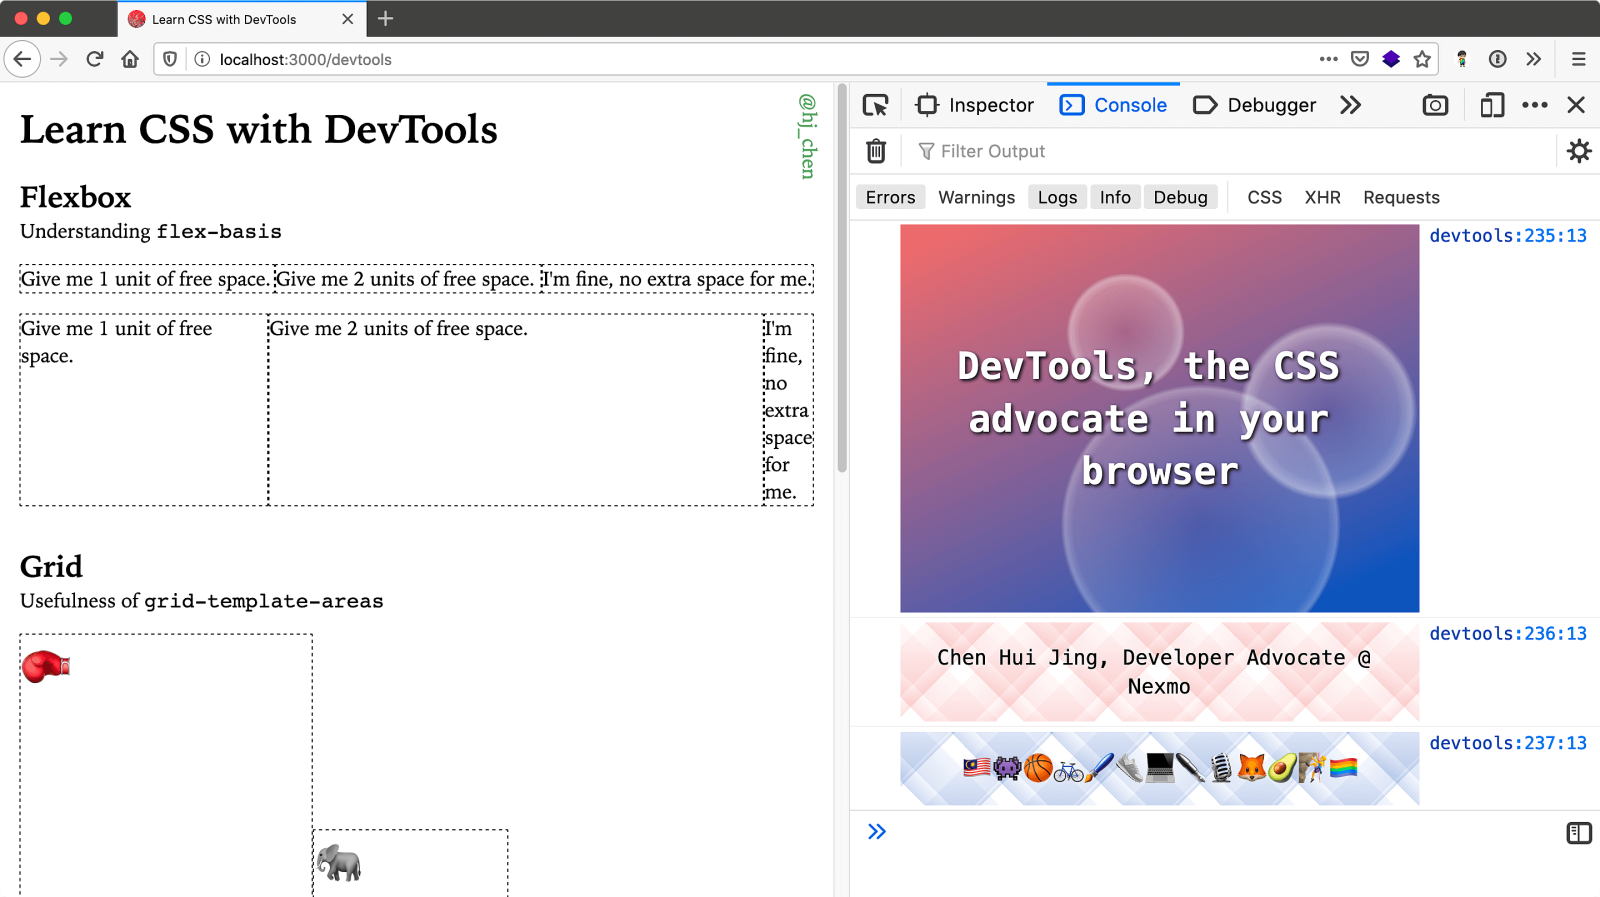 DevTools, the CSS advocate in your browser